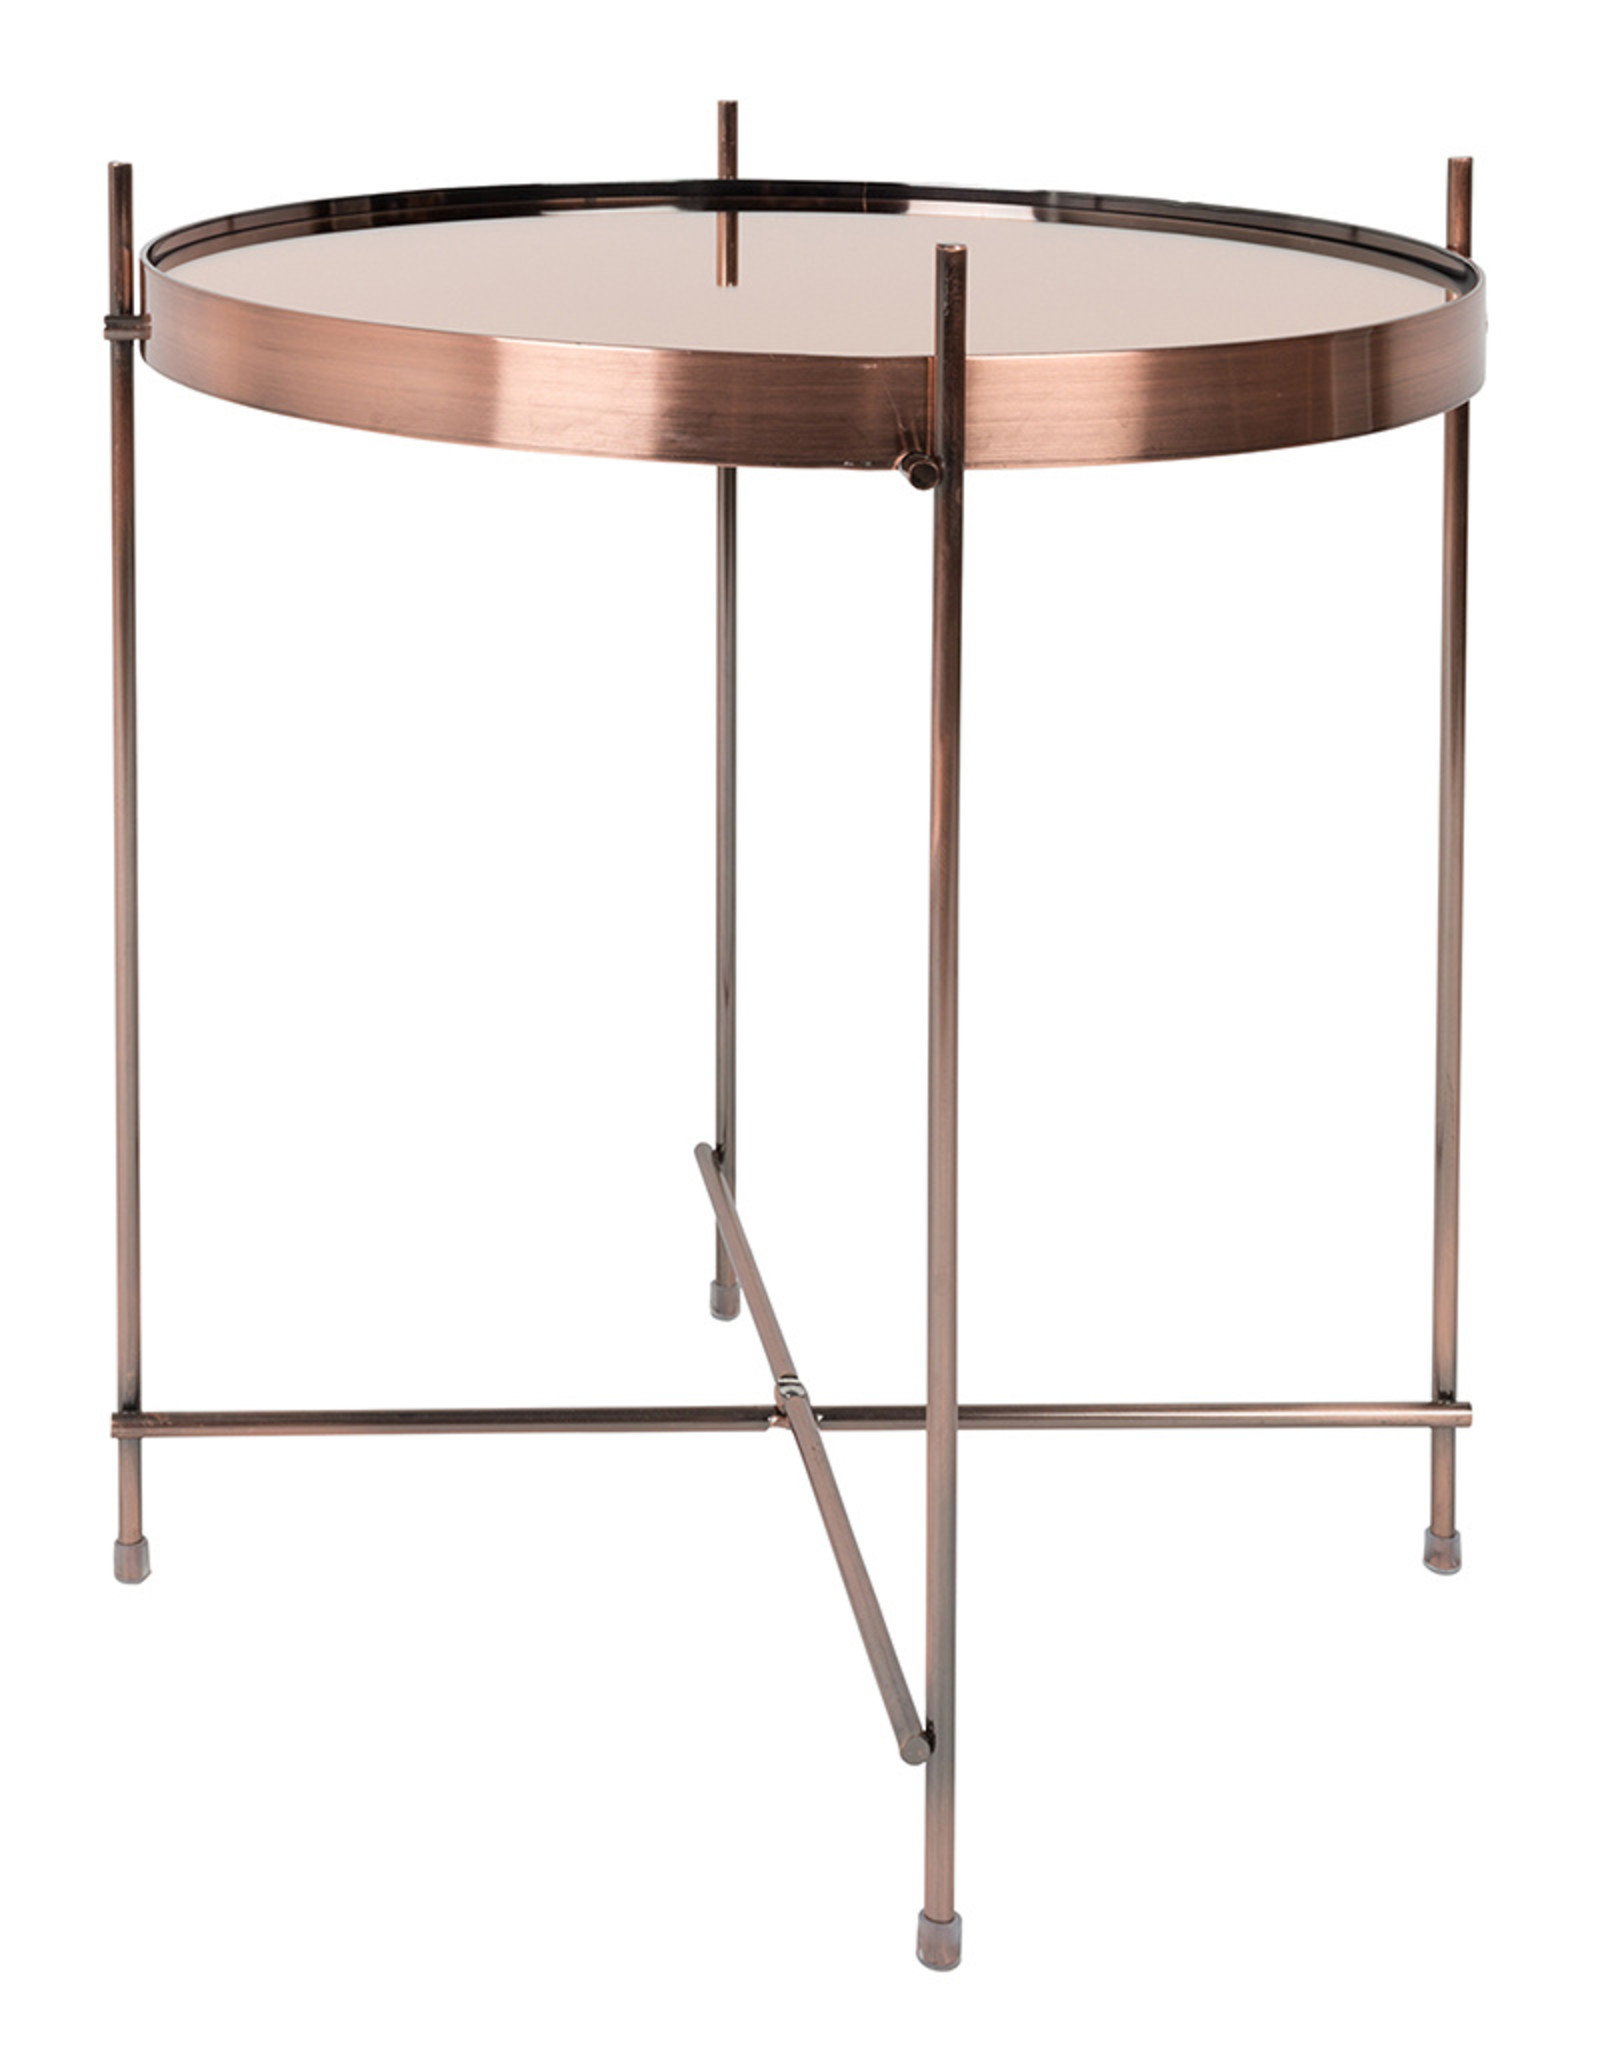 ZUIVER BV Cupid Side Table